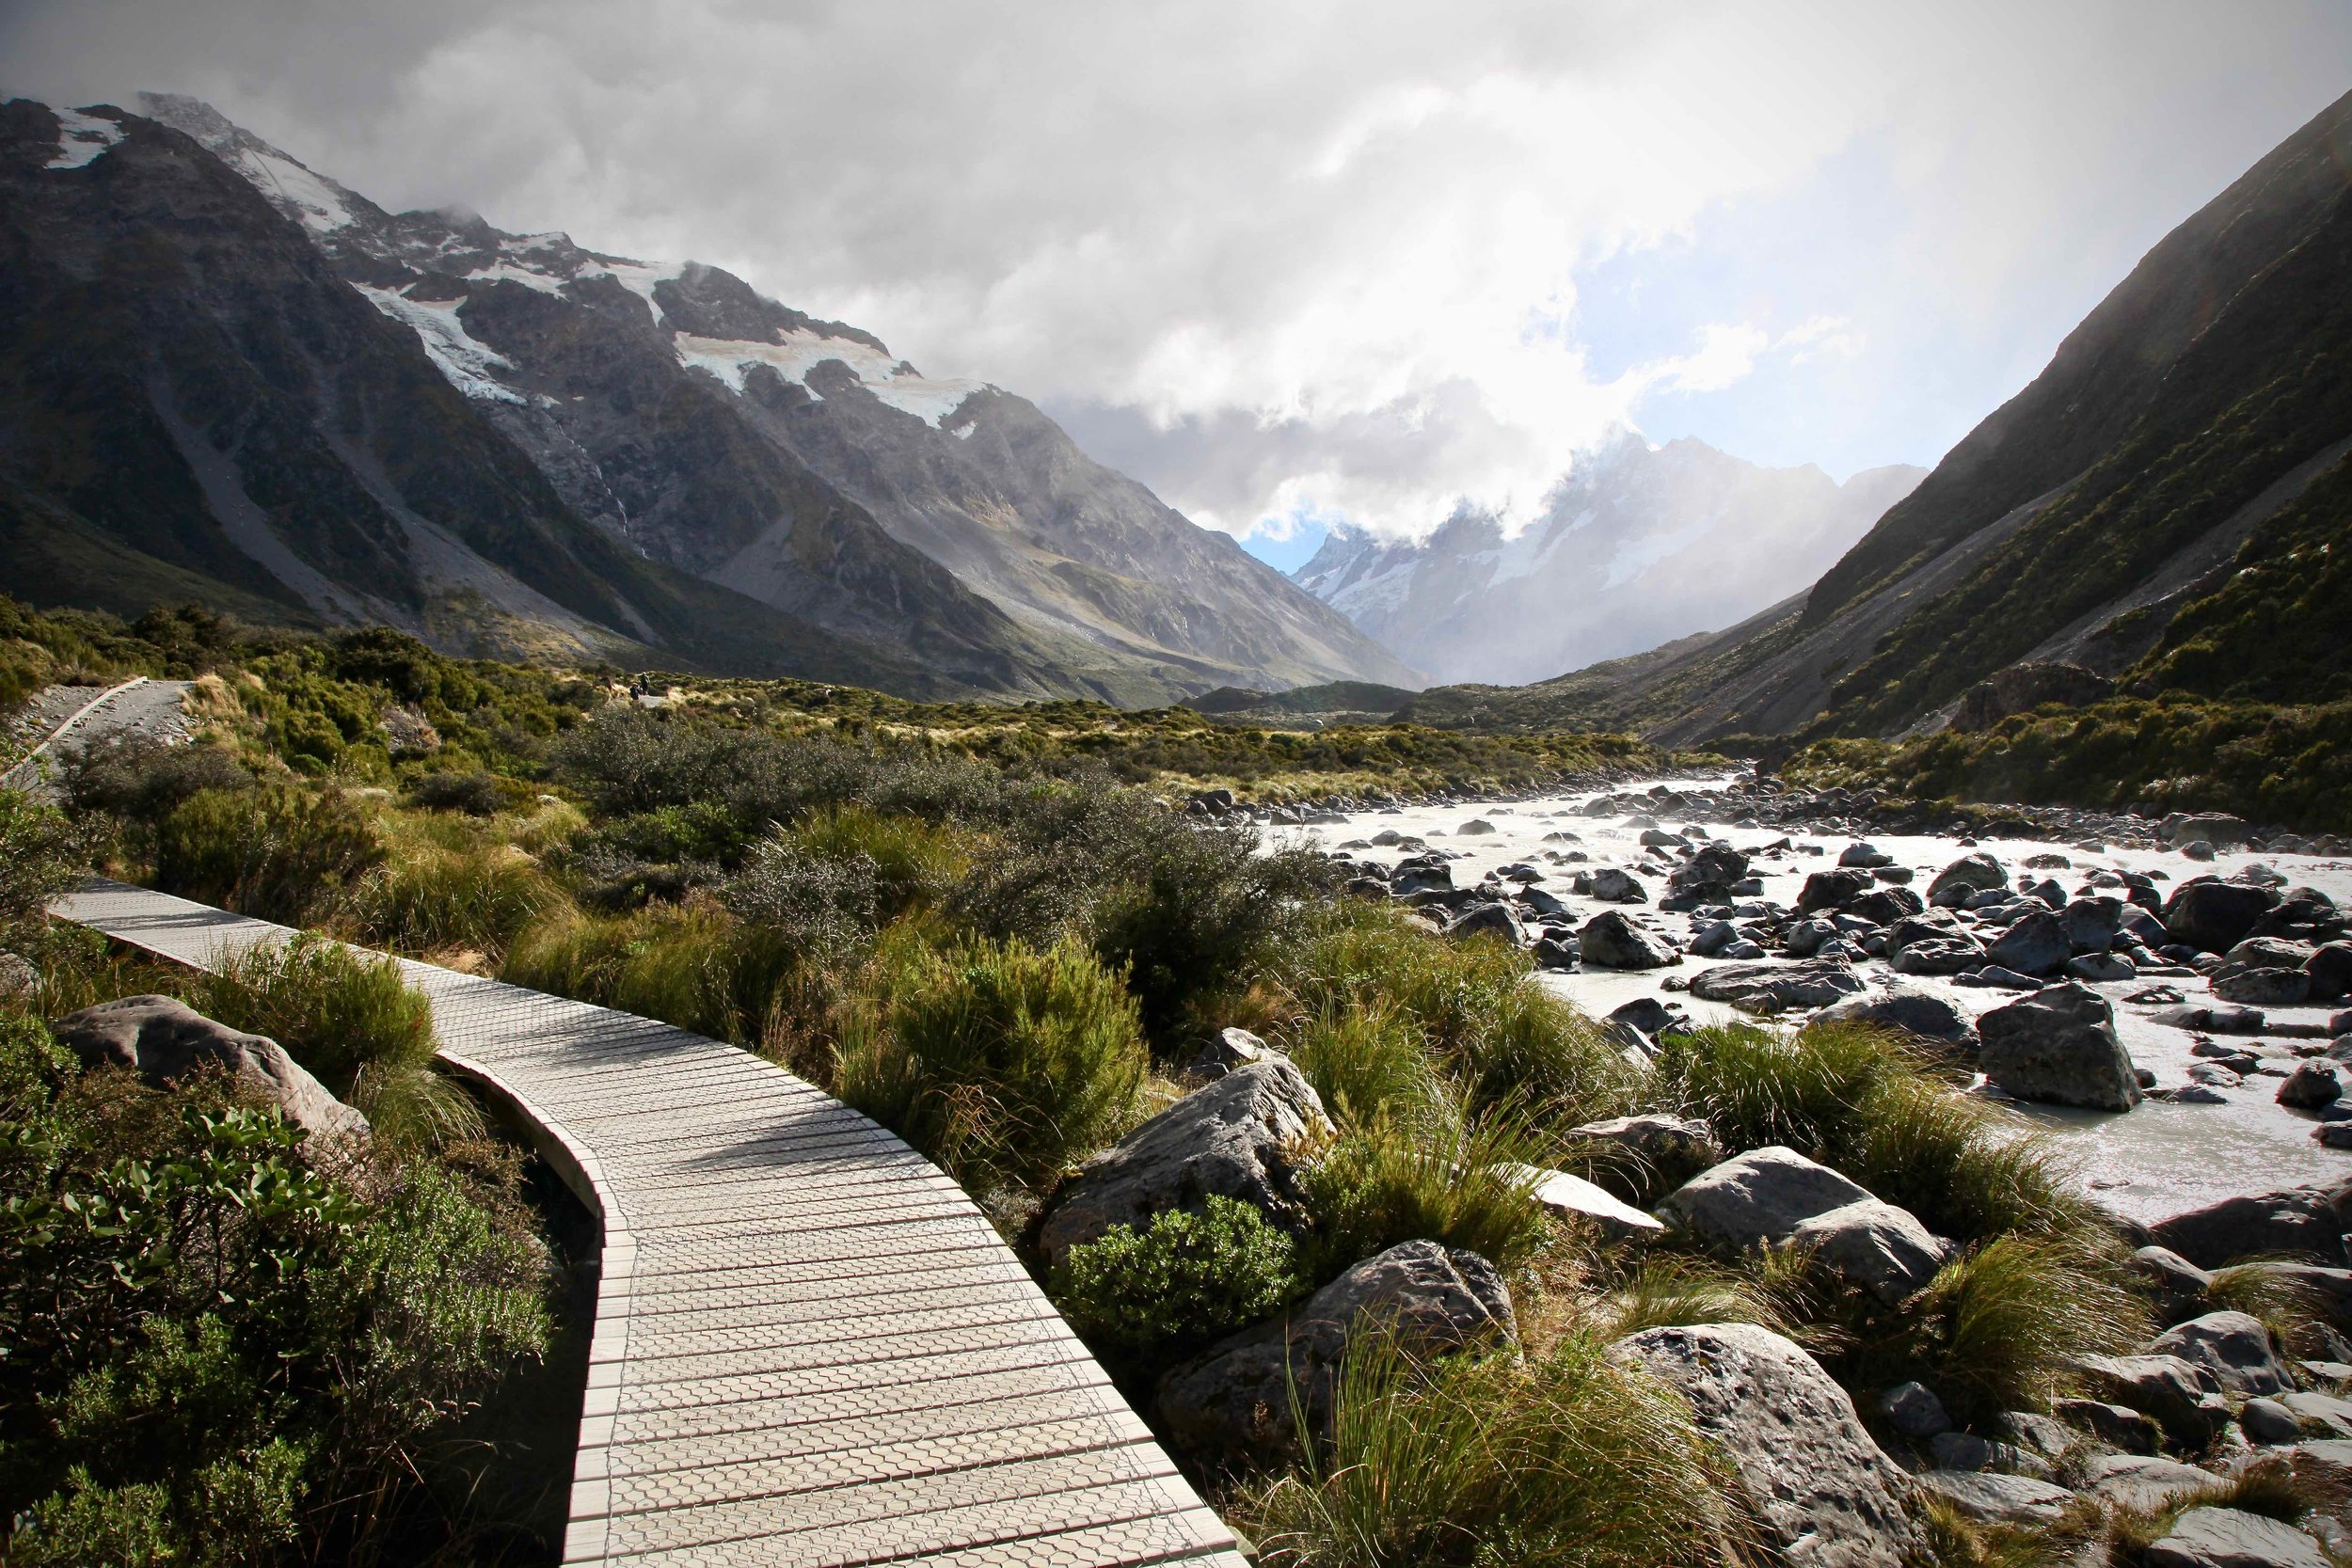 hooker-valley-track-mt-cook-day-hike.jpg